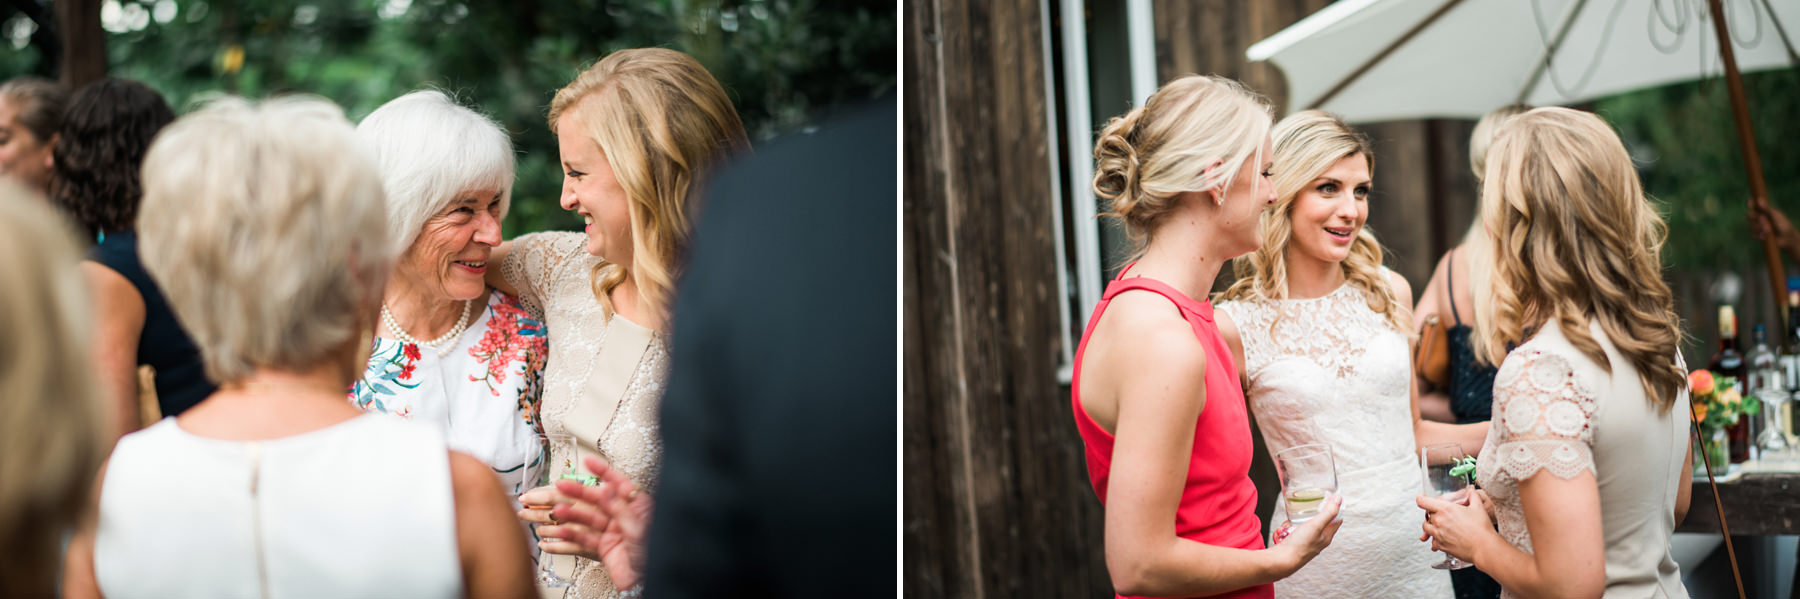 224-outdoor-wedding-at-the-corson-building-in-seattle.jpg